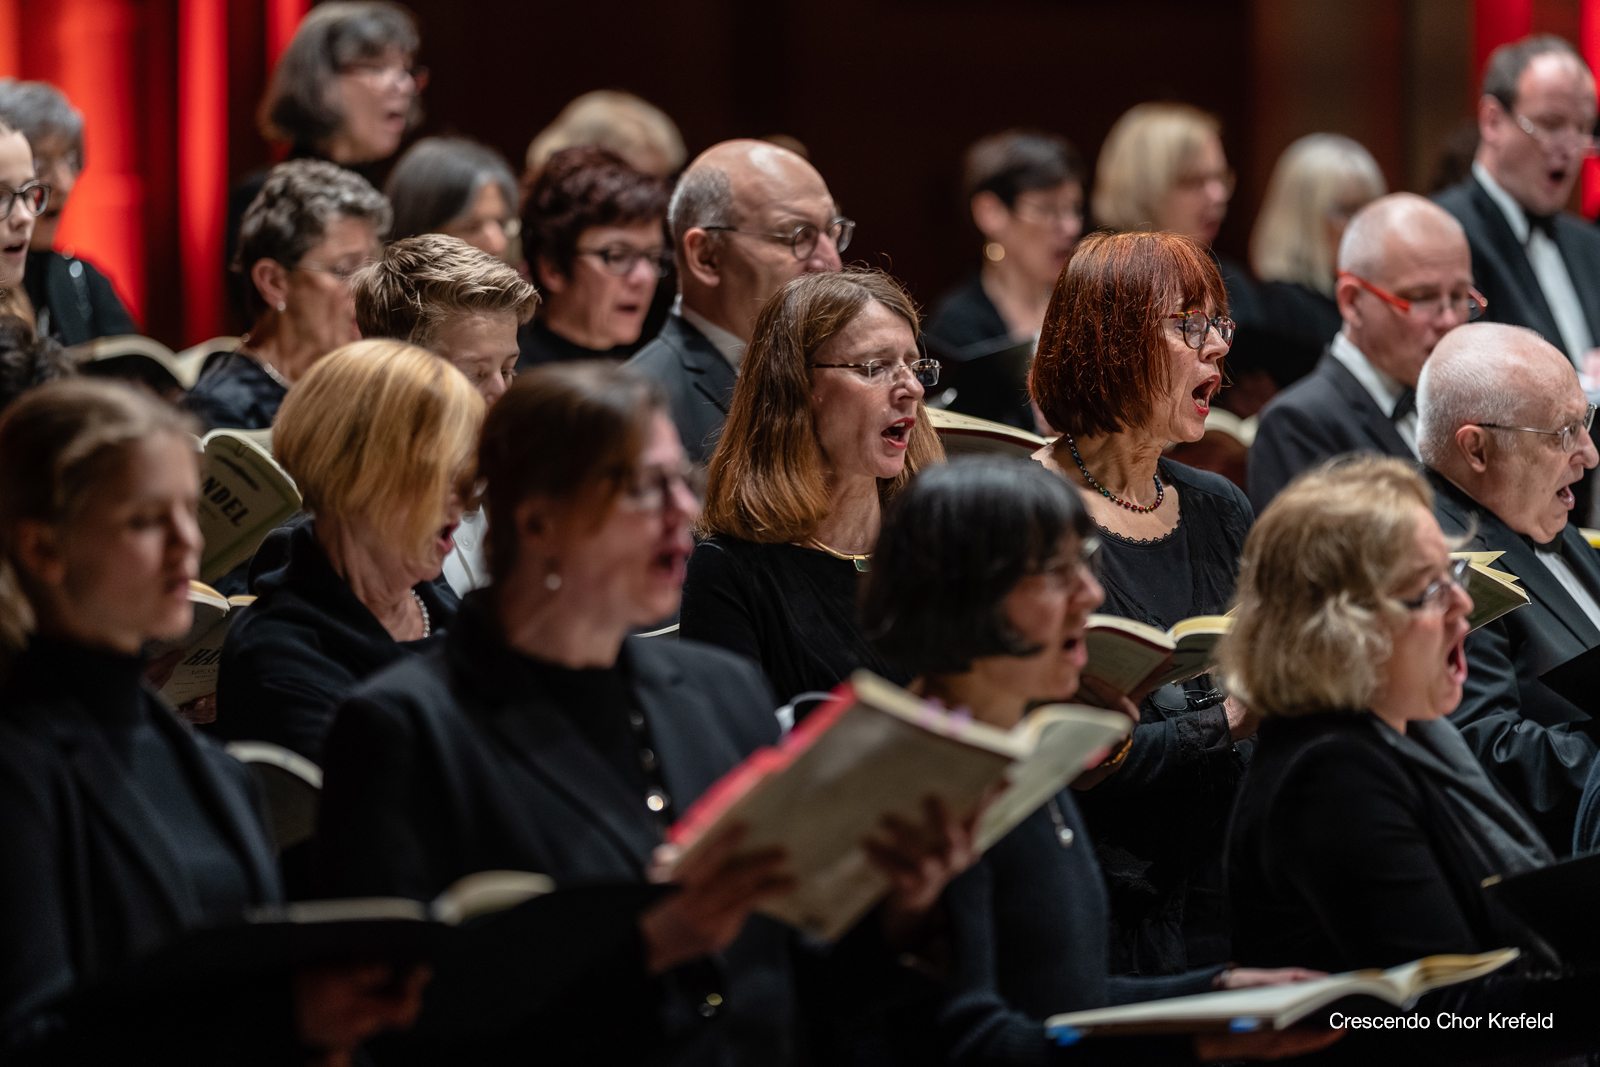 07_20191222_Crescendo_Chor_Krefeld_Messiah_037